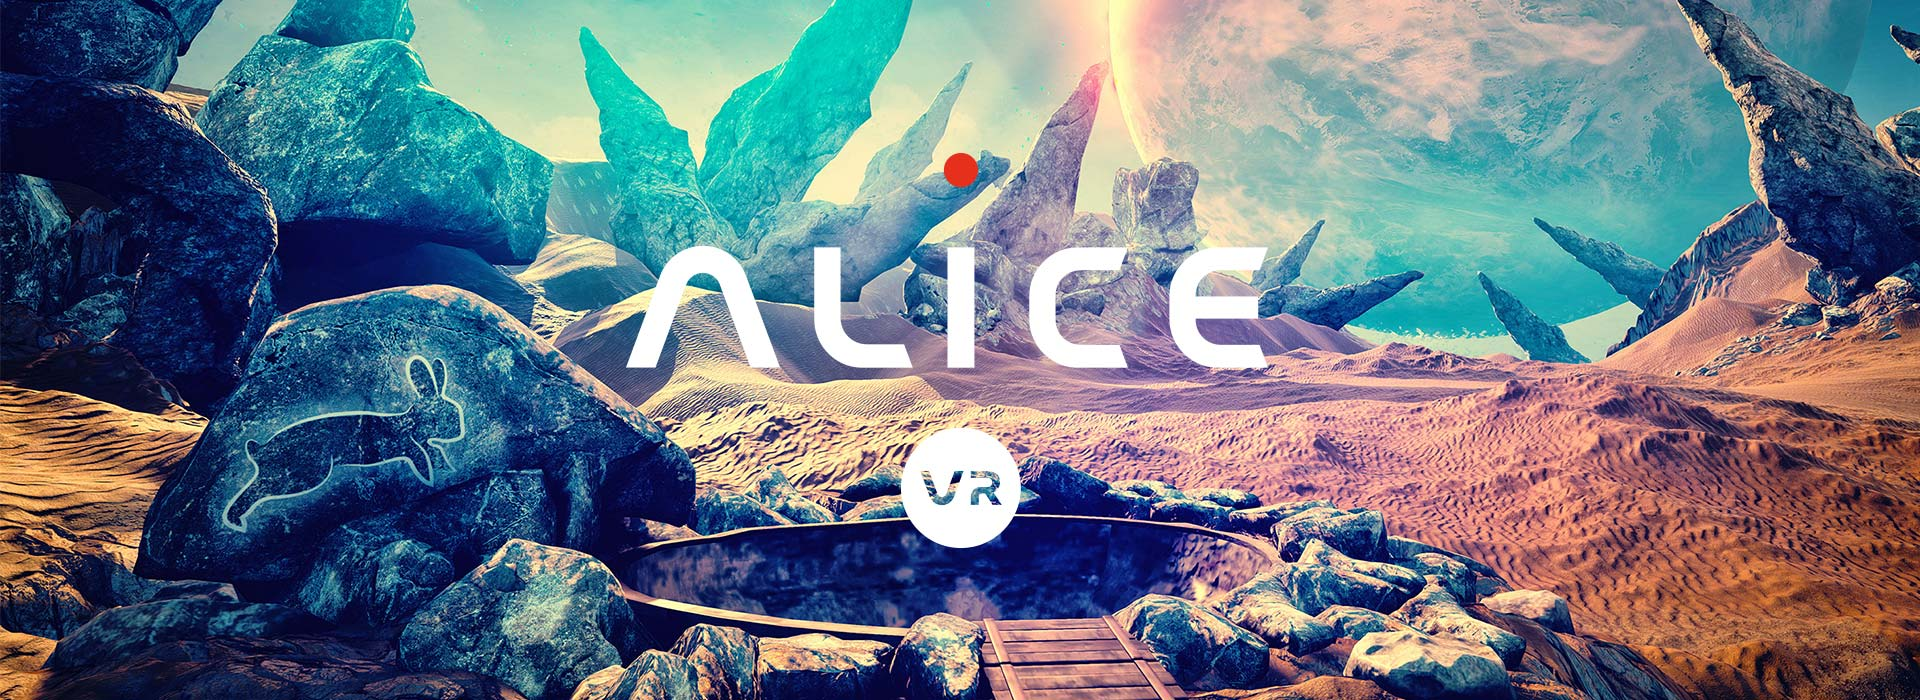 Alice VR Free Download, Alice VR Free Download